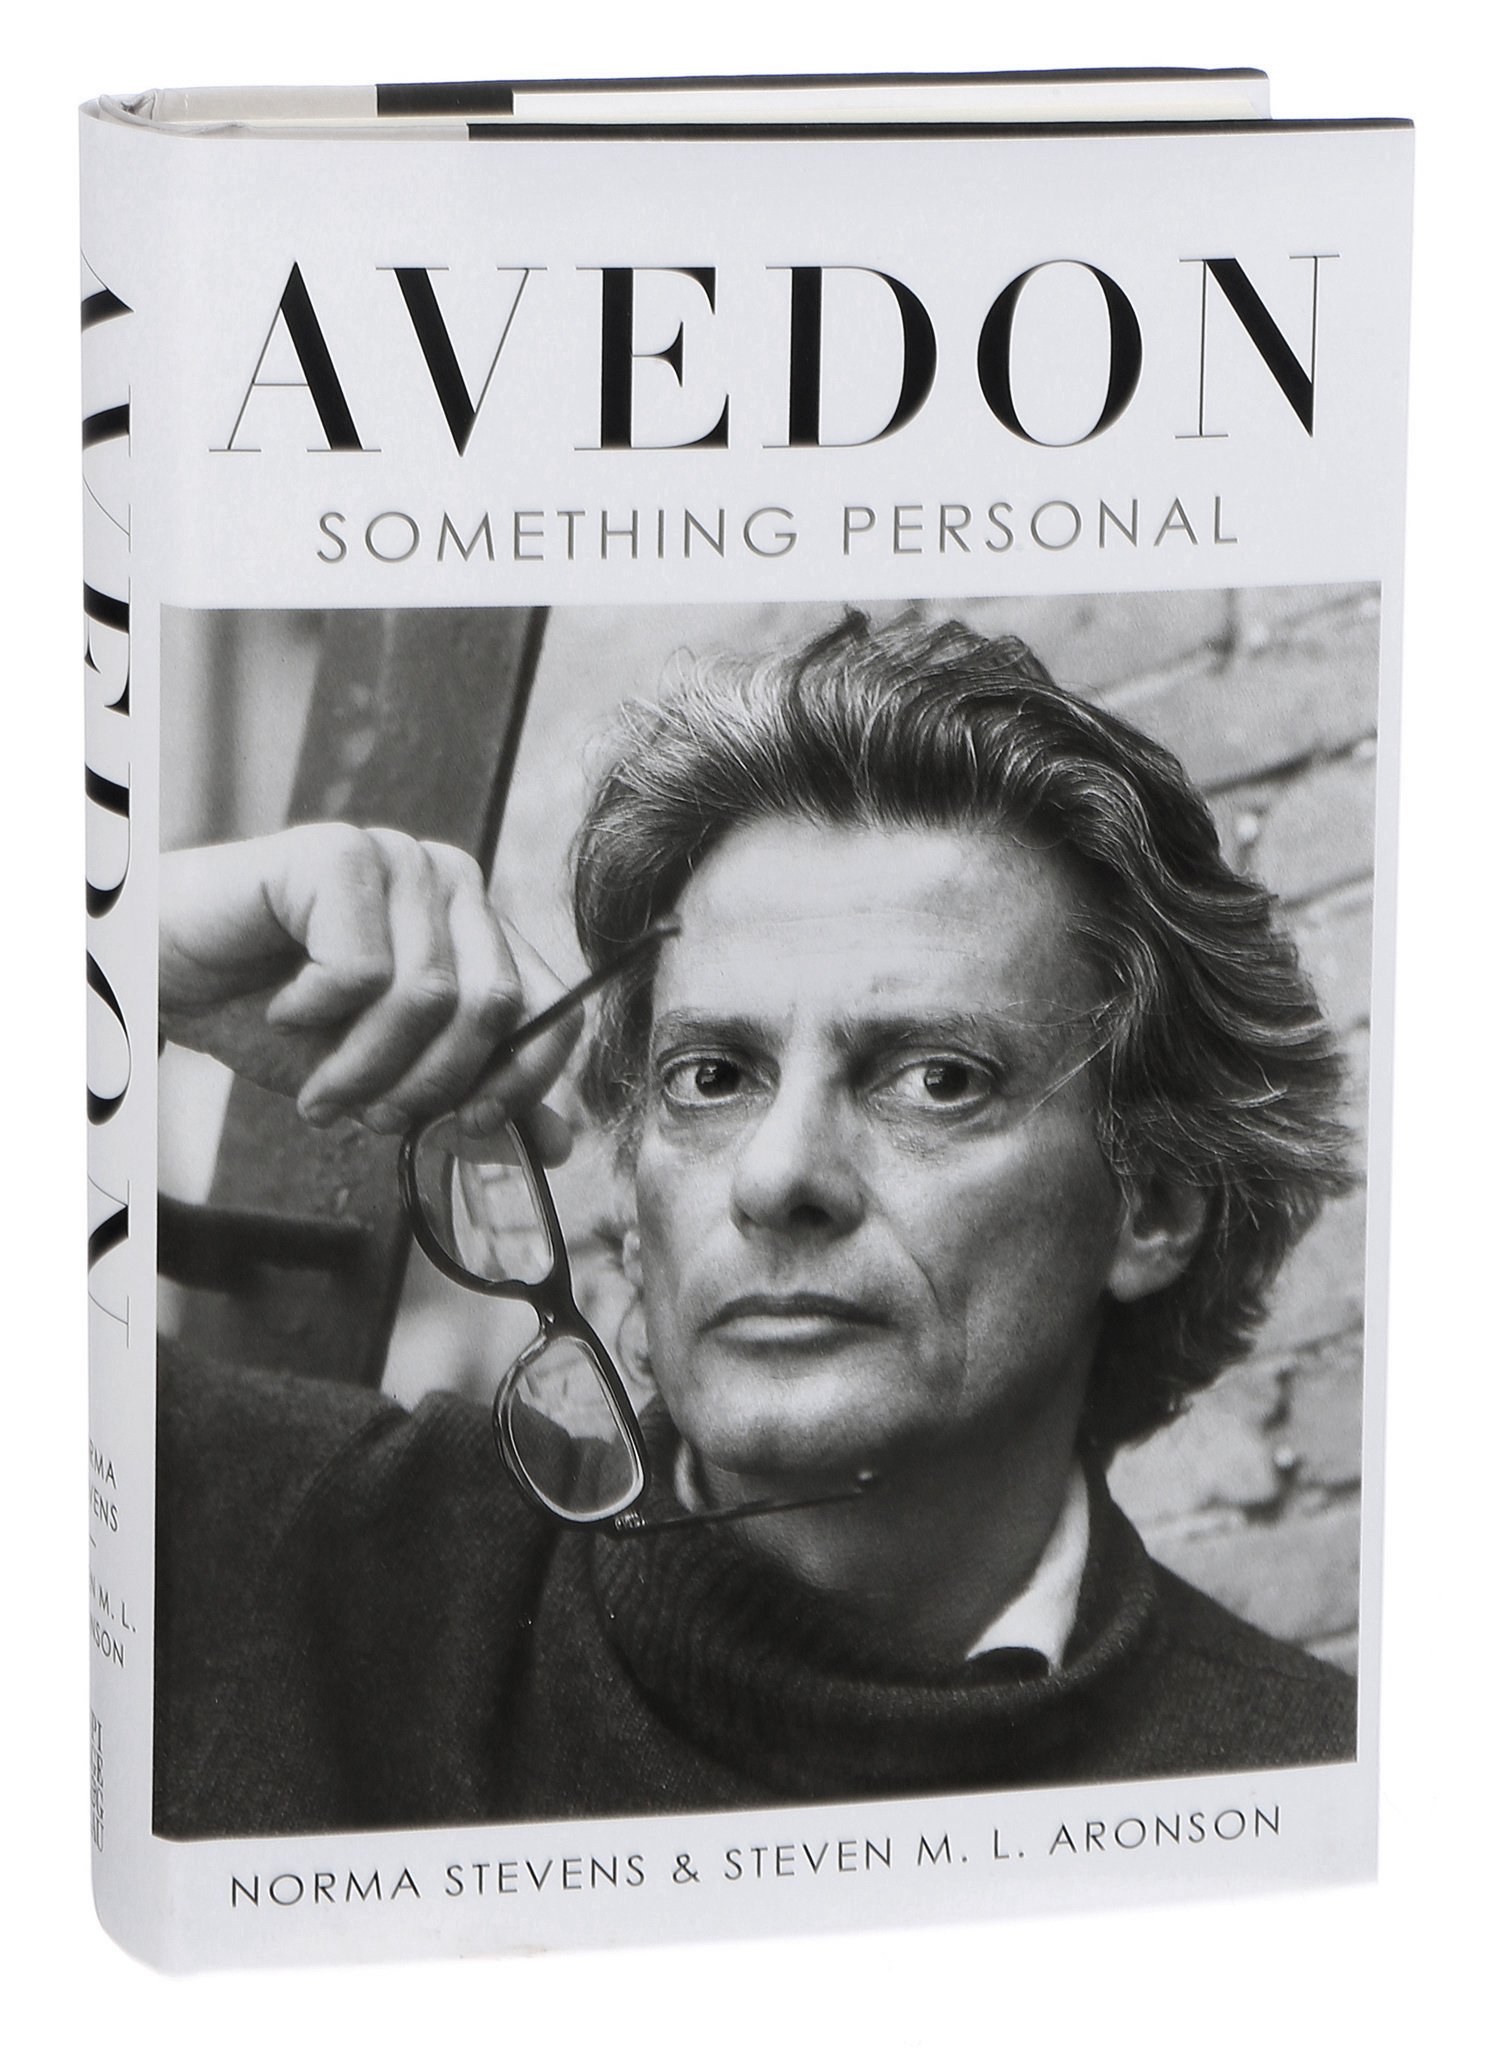 Avedon, Something Personal